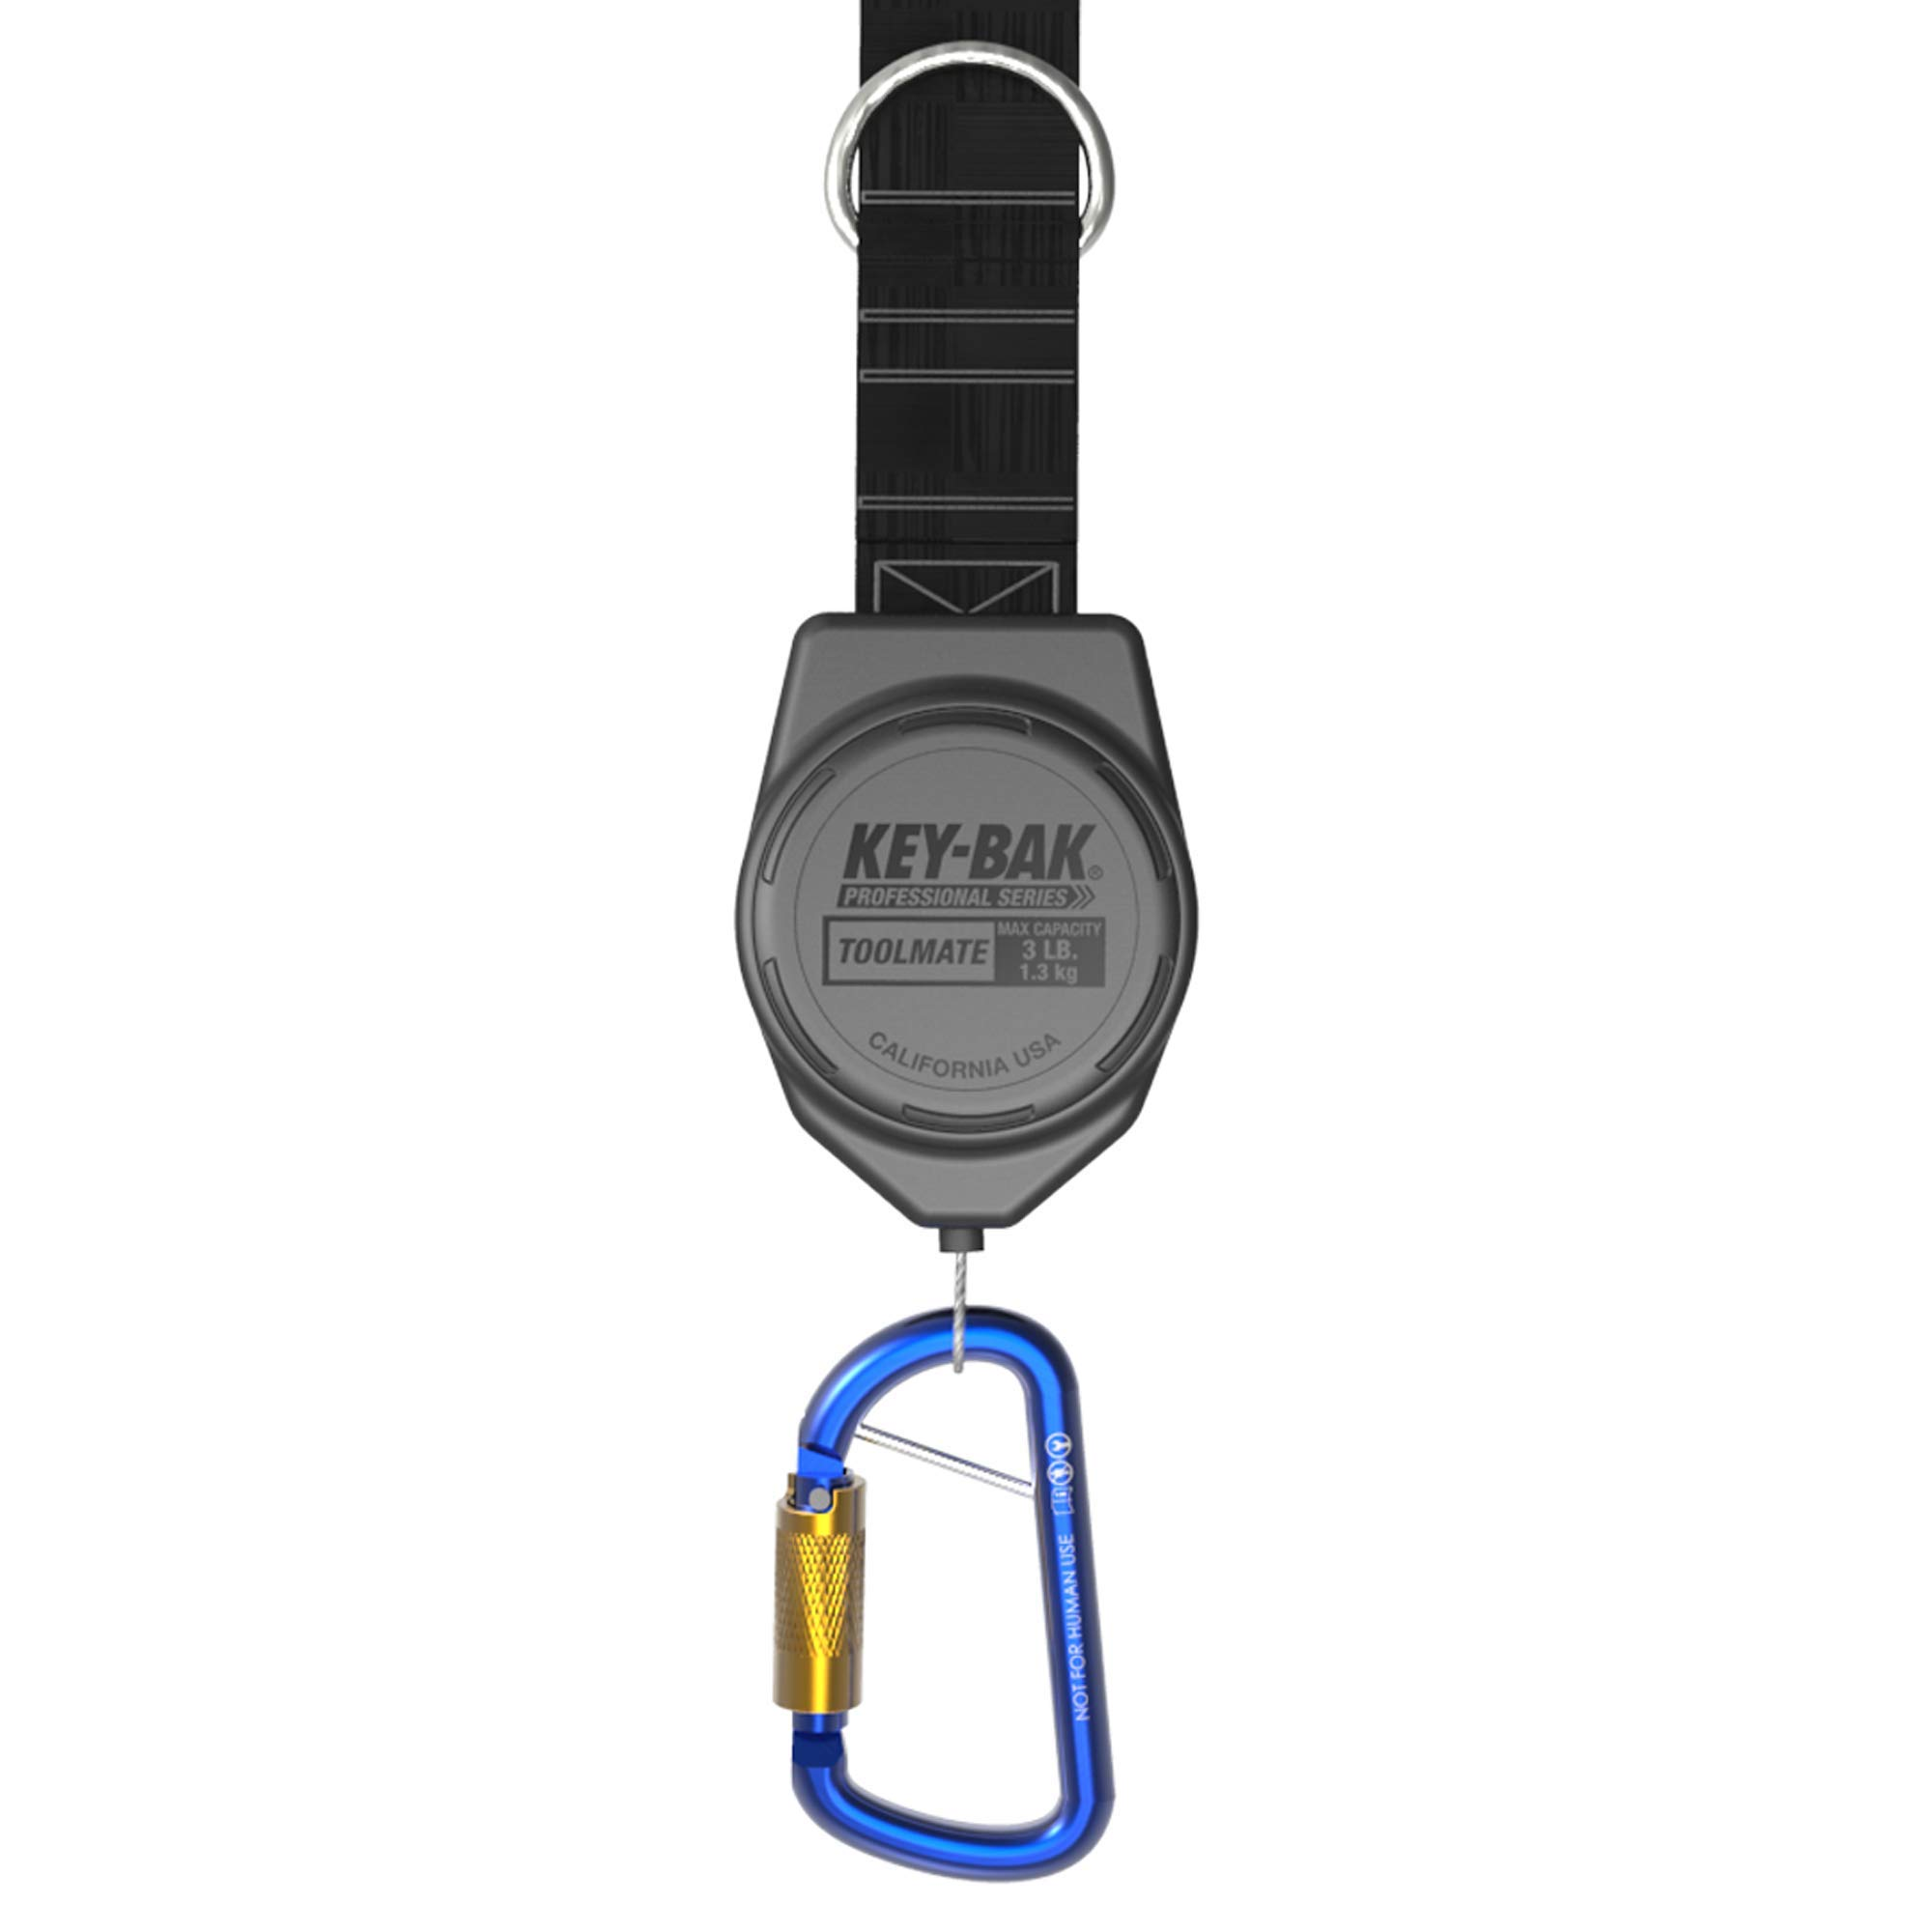 KEY-BAK Toolmate Rewinding Tool Lanyard, 3 lb. Drop Capacity, 6 oz. Retraction, Safety Tell-Tale, Locking Swivel Carabiner, Stainless Steel Coated Cable